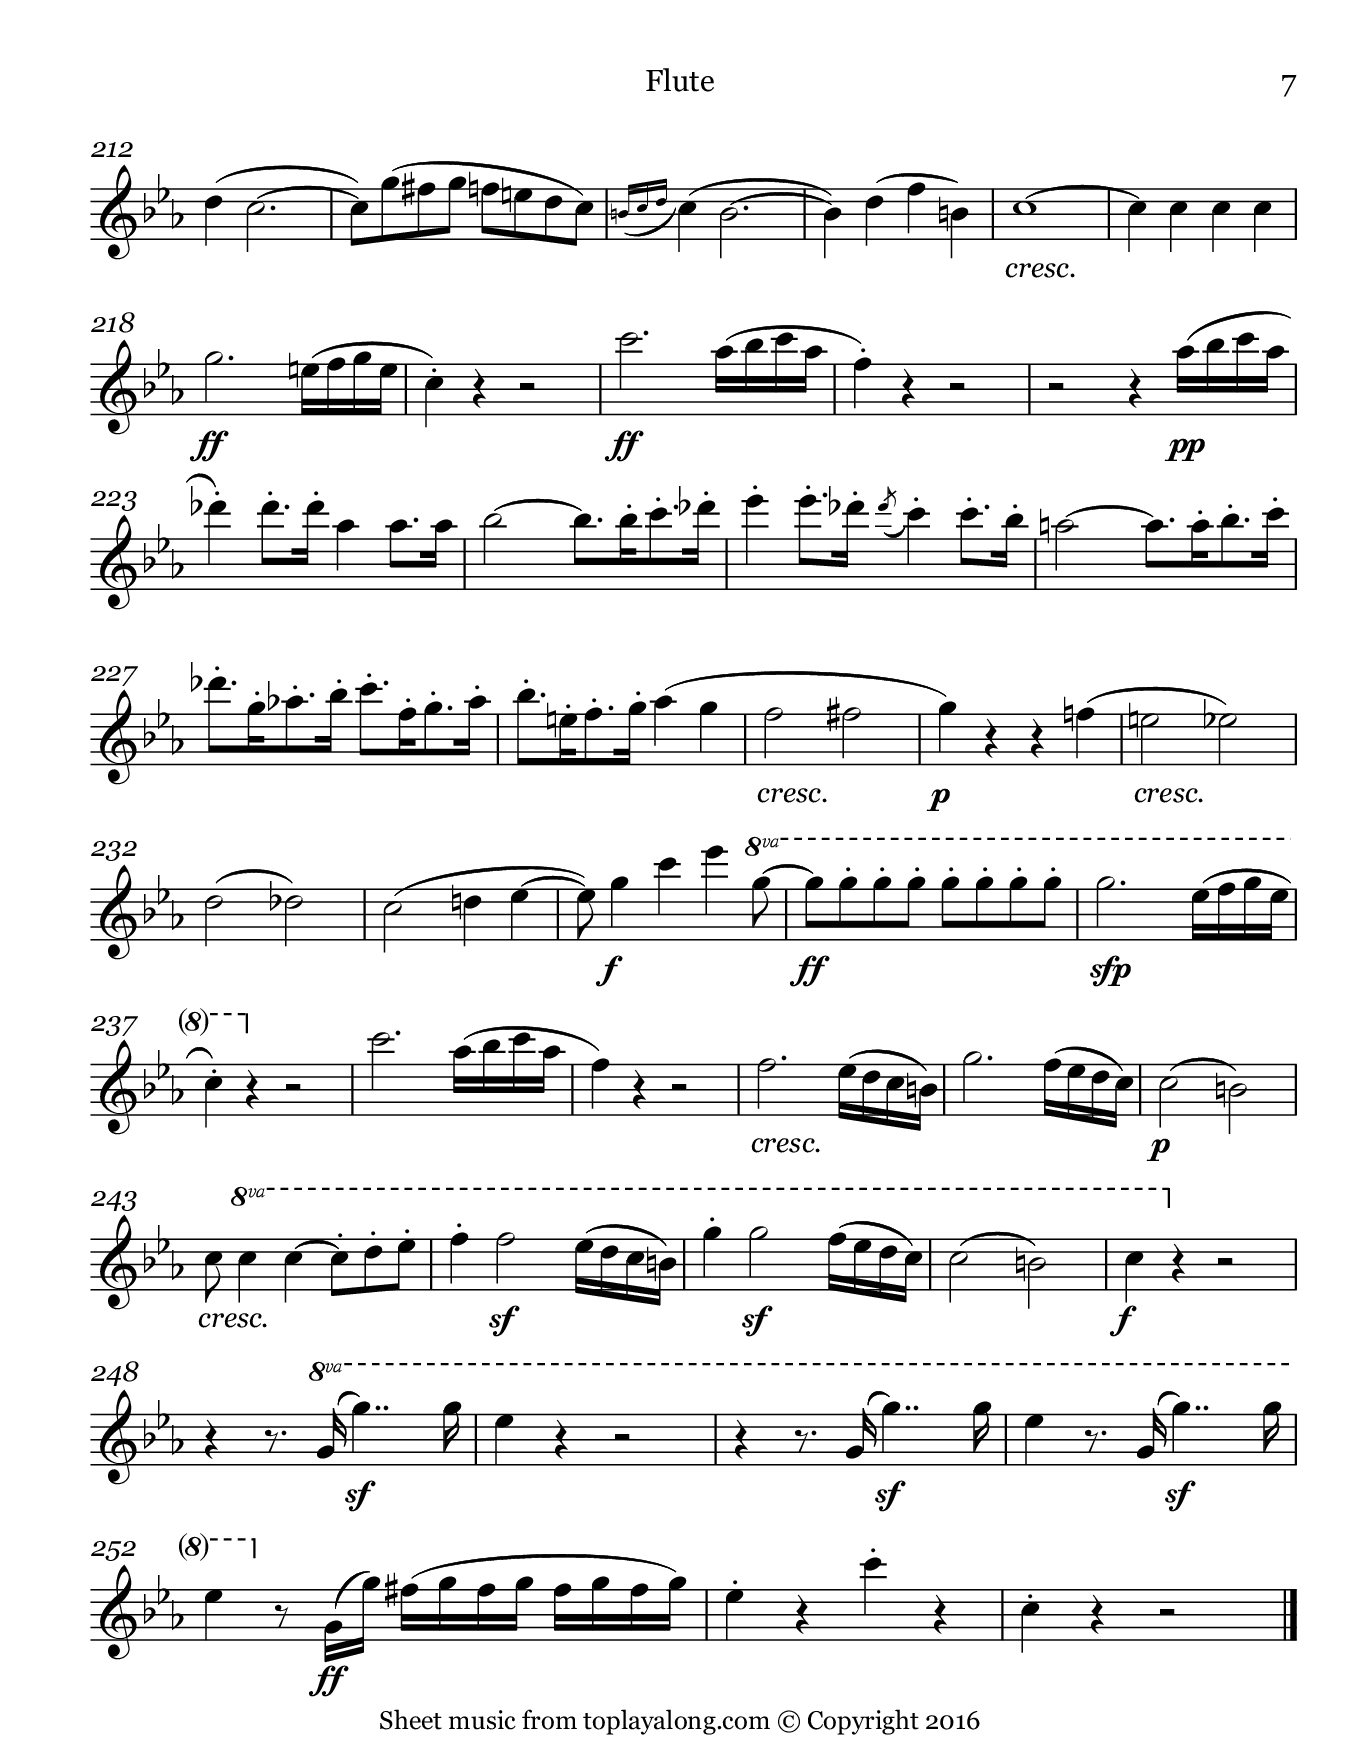 Violin Sonata No. 7 (I. Allegro) by Beethoven. Sheet music for Flute, page 7.